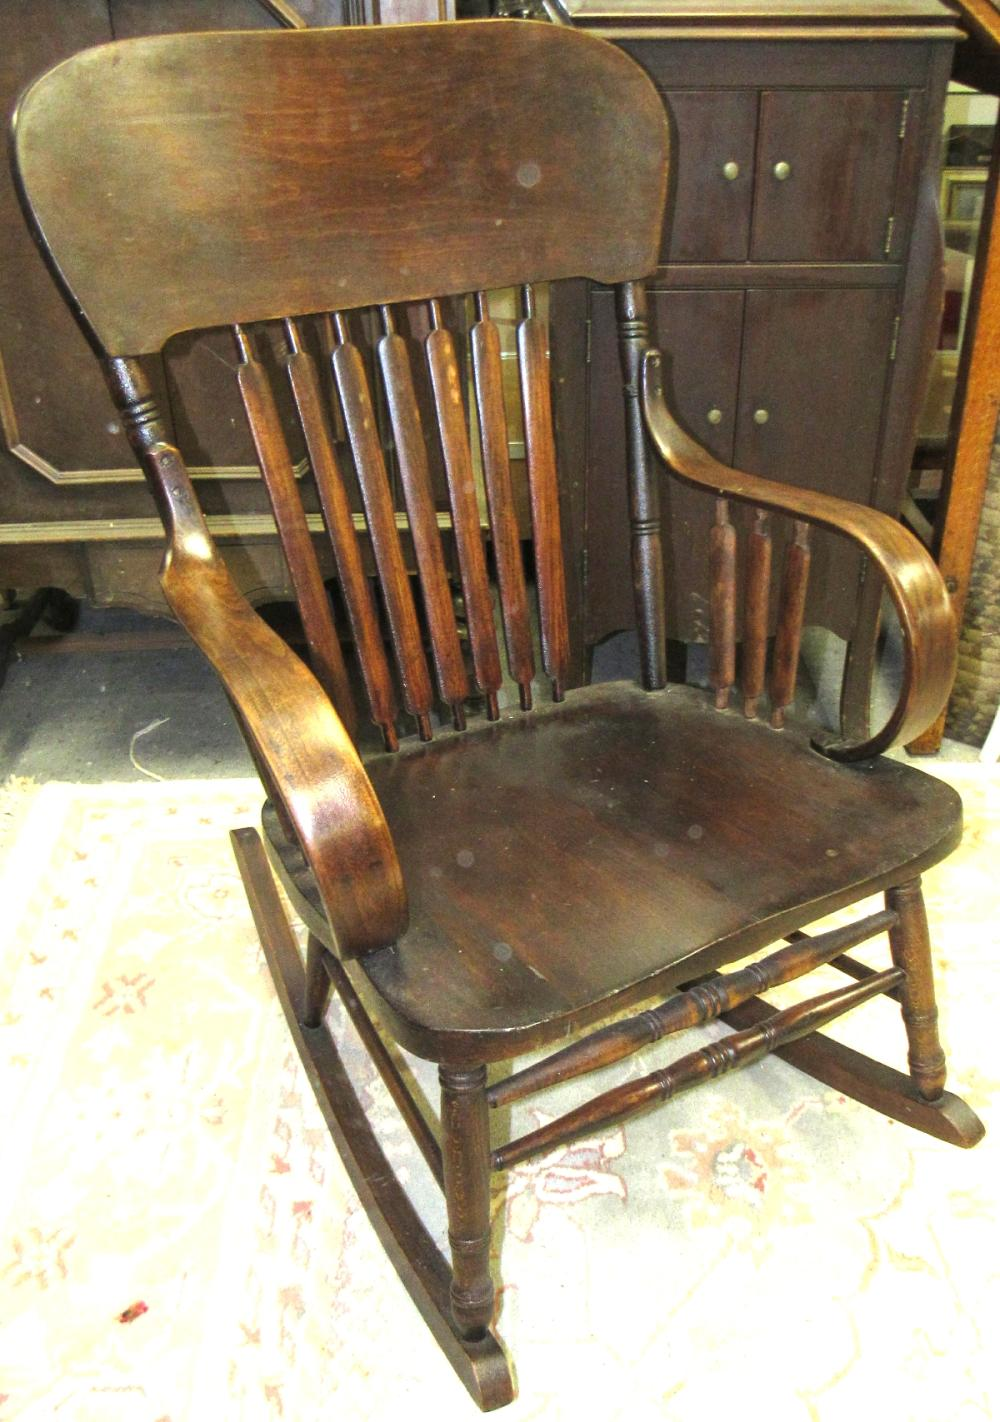 Antique Oak Rocker, All Responsibility for Shipping will be the Successful Bidder. You must arrange for pickup directly or by a shipper within 7 days after sale.